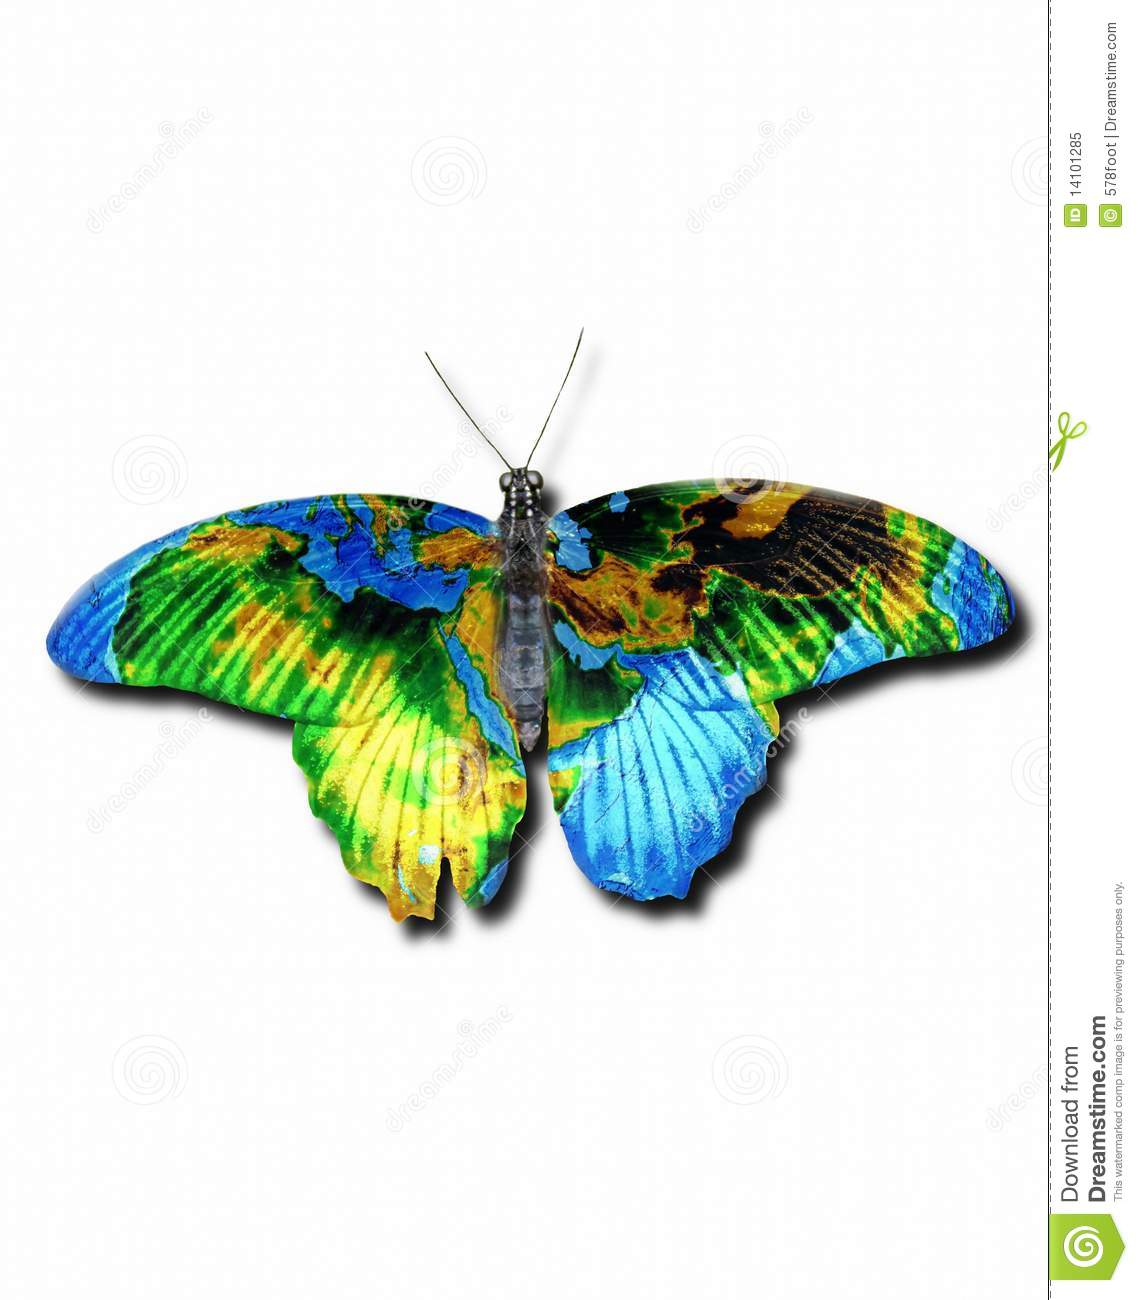 Nature Images 2mb: Earth Butterfly Stock Image. Image Of Cloud, Nature, White